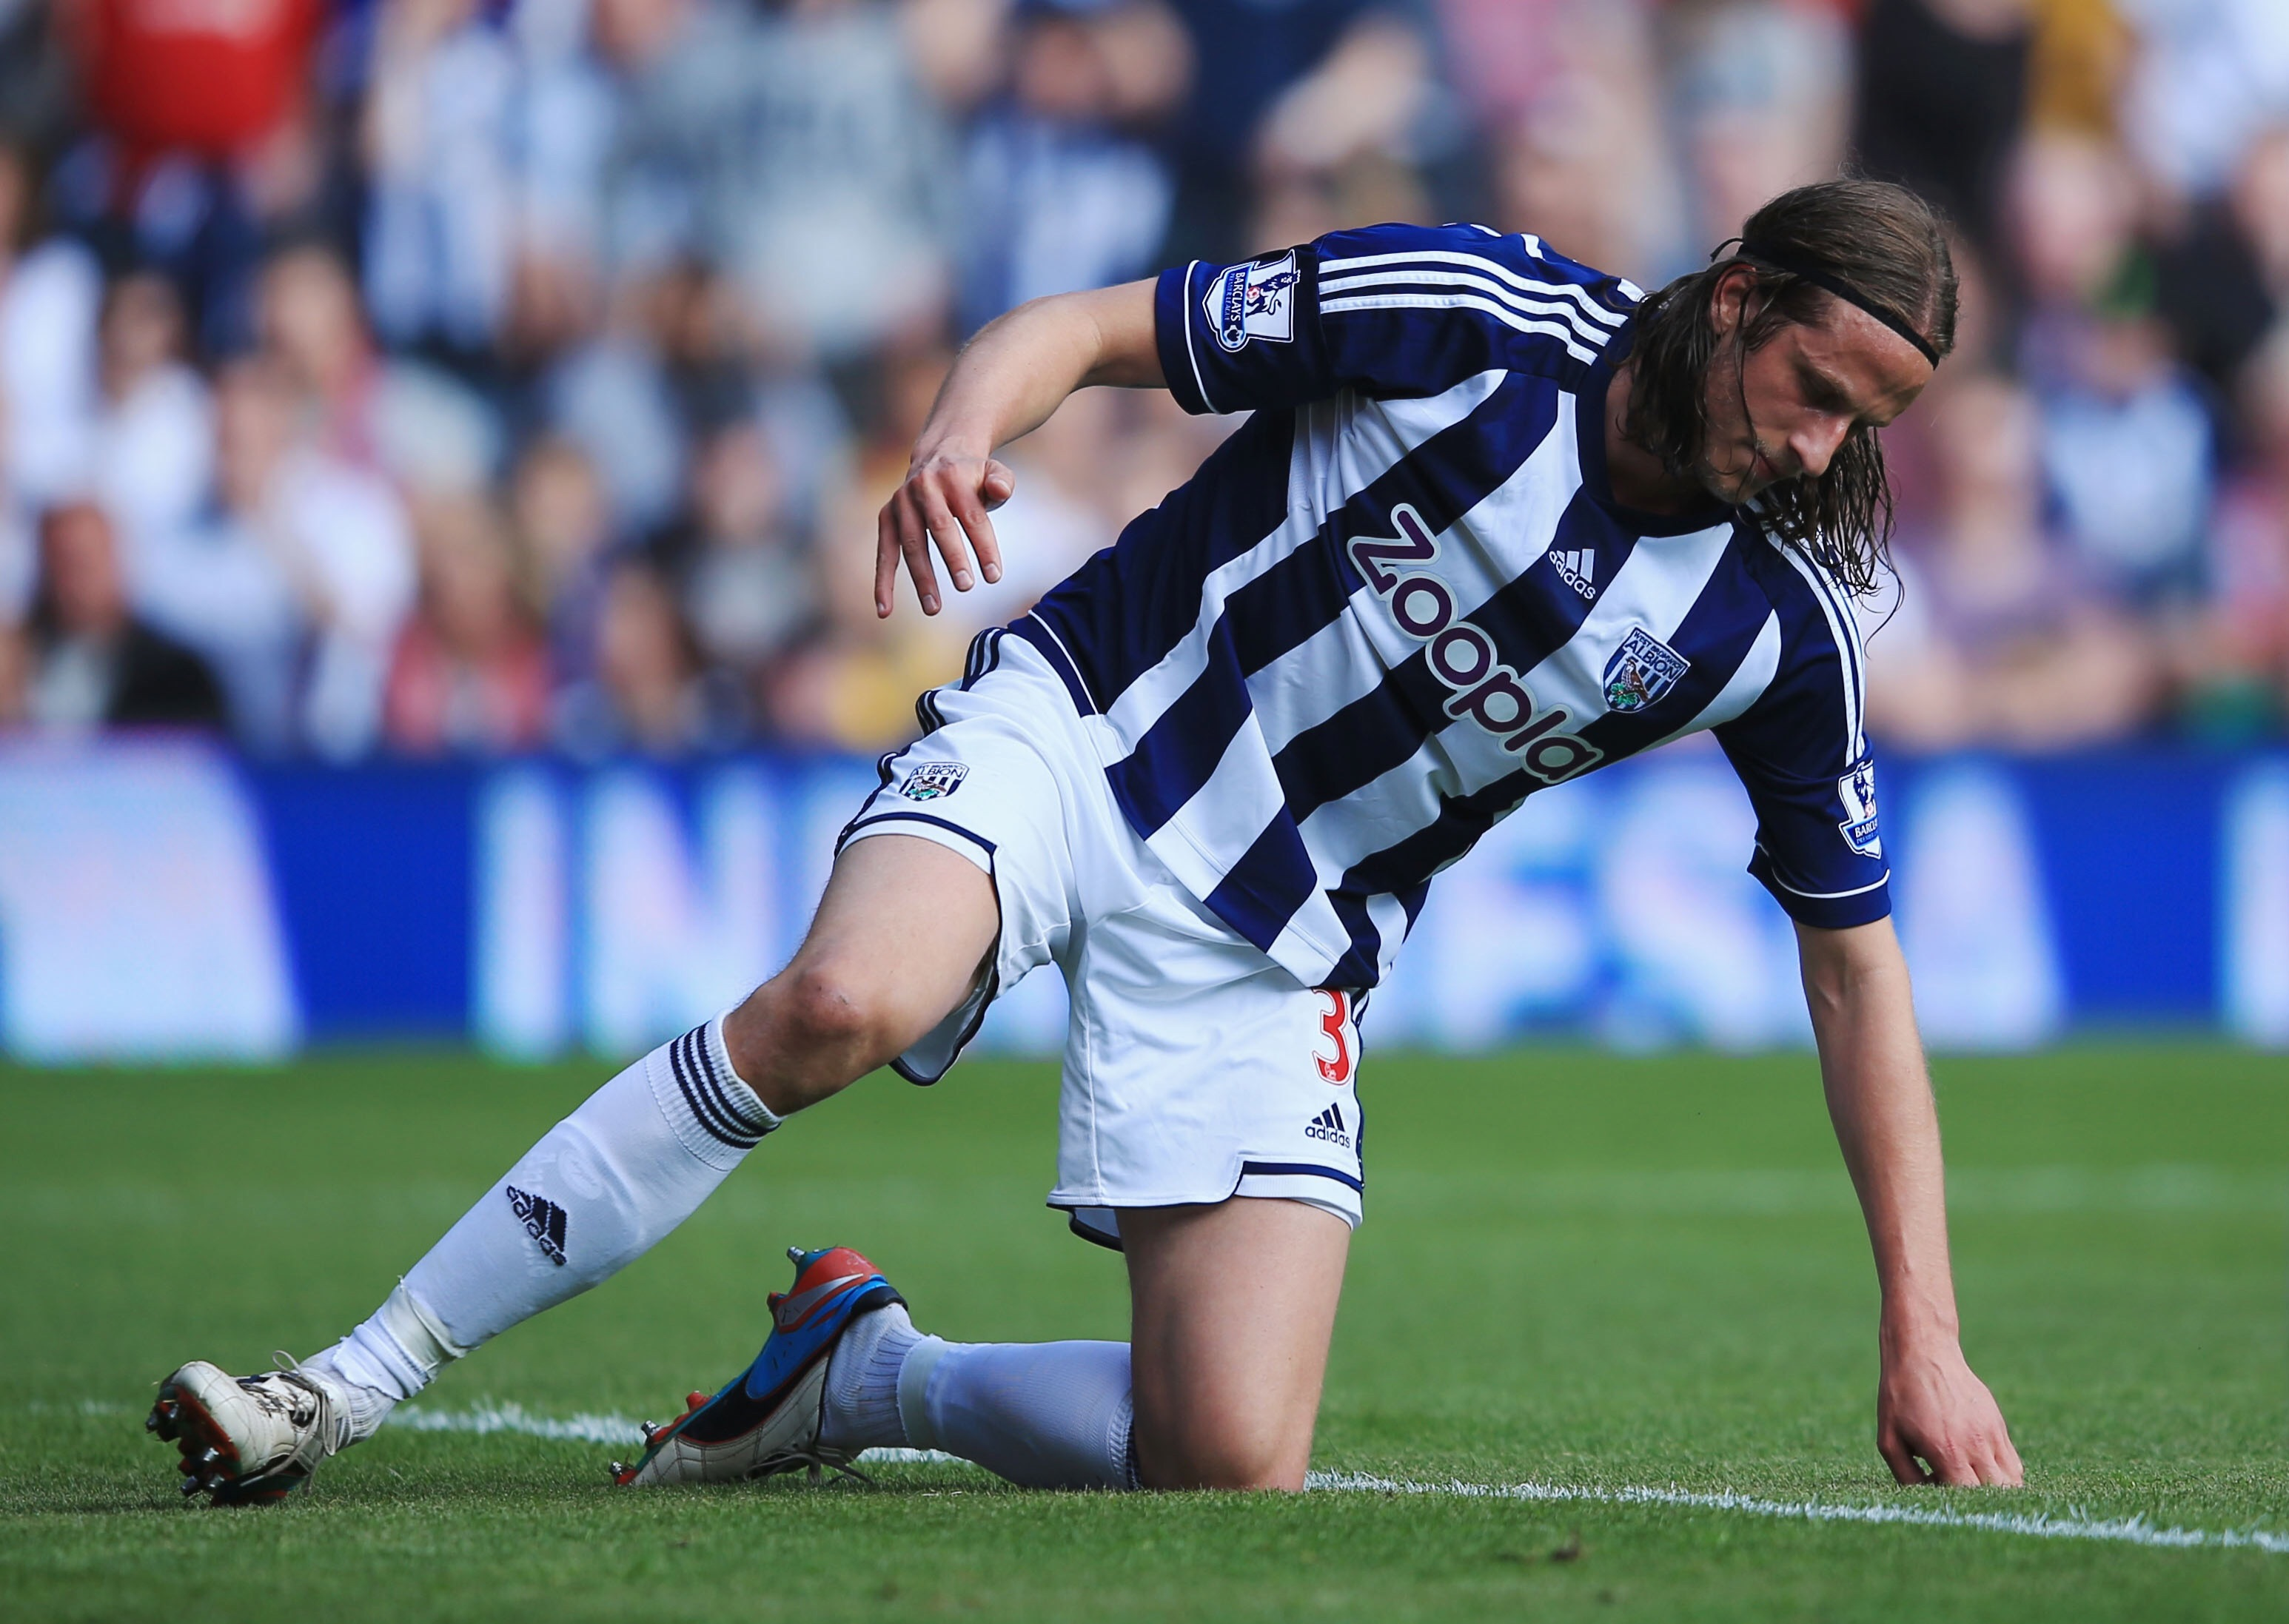 Jonas Olsson goal gives West Brom shock win at Manchester United